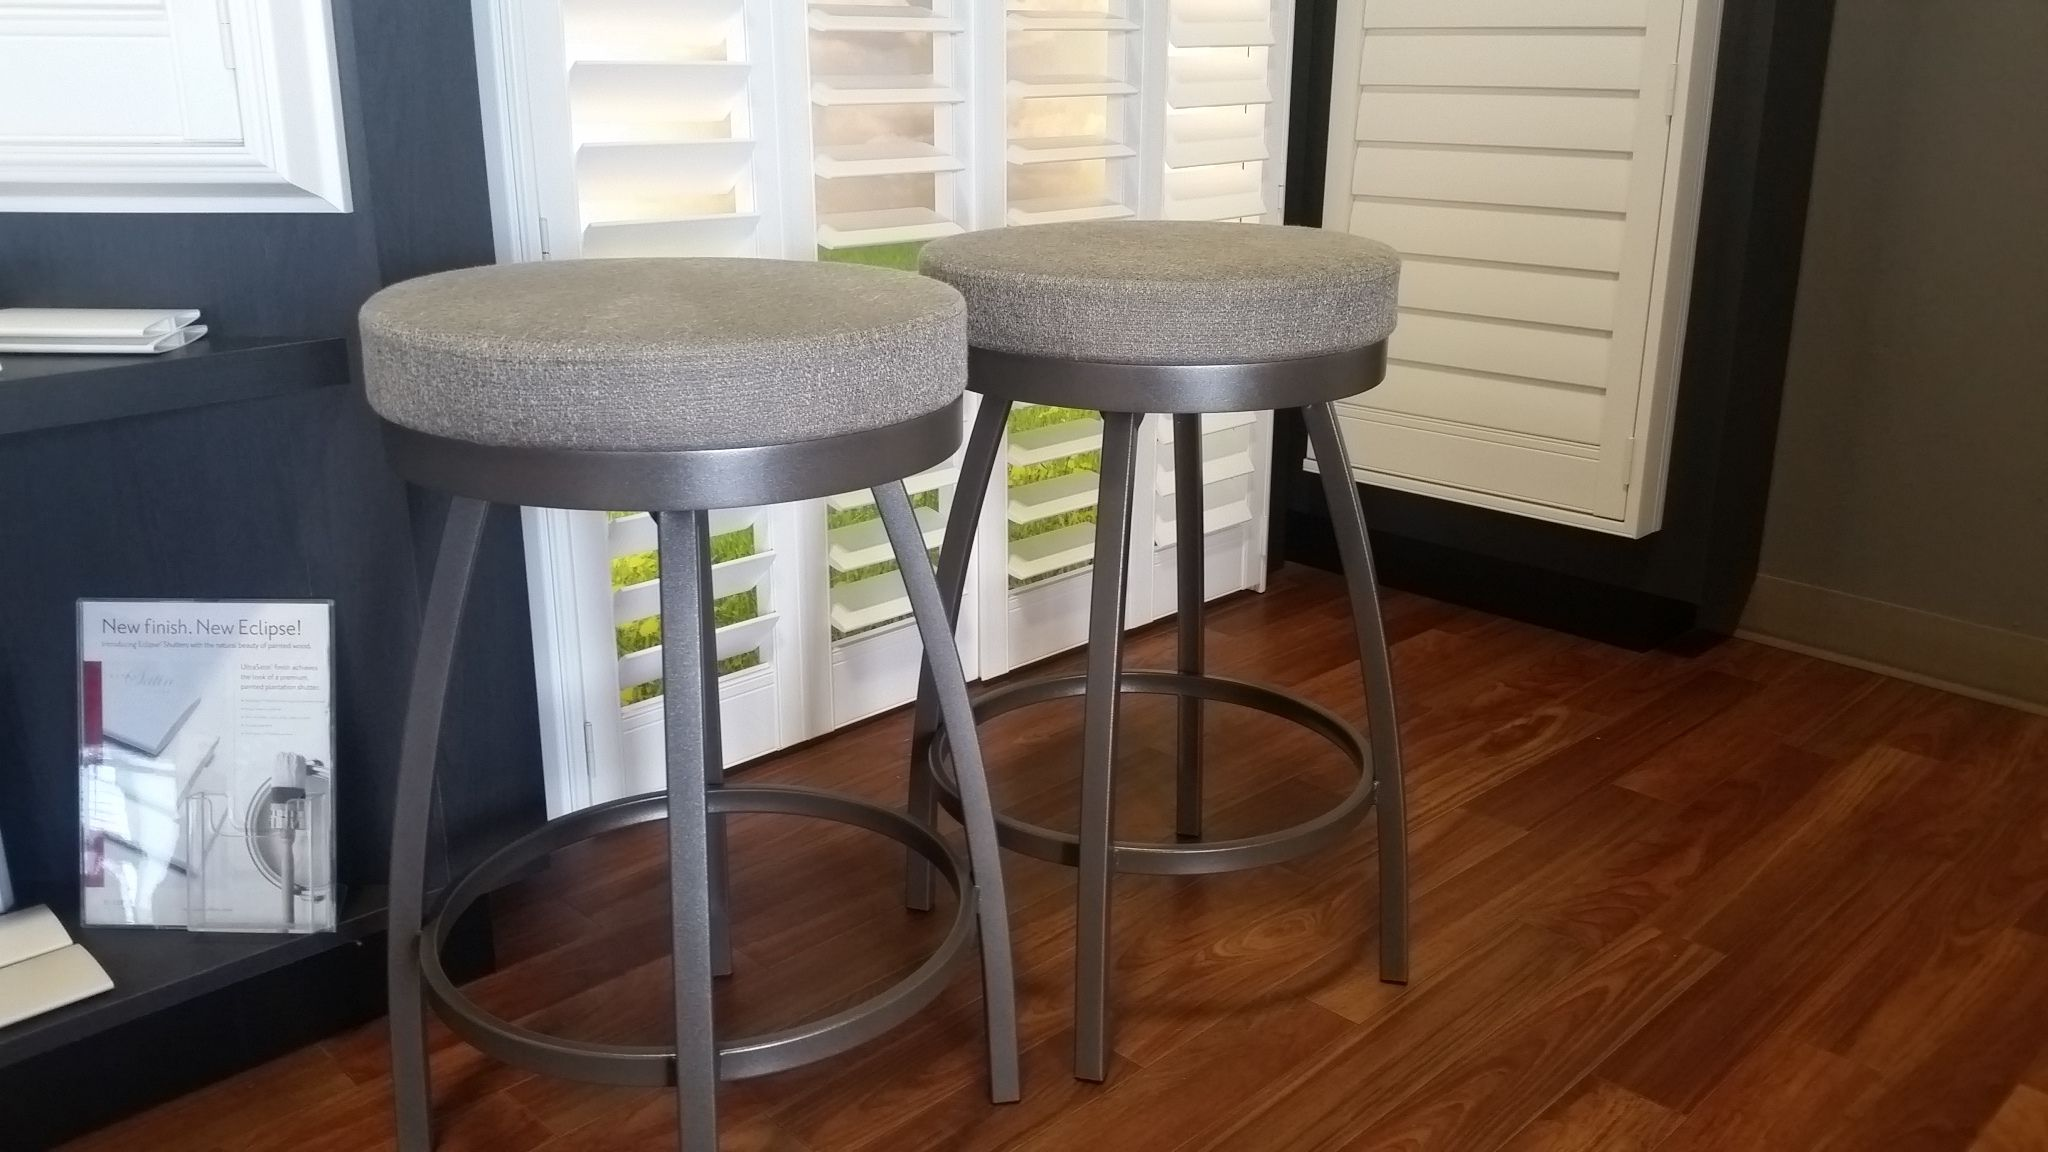 The Henry Style Barstools By Trica Are By Far One Of Our Best Sellers Here They Are Again Gorgeous Just Gorgeous Bar Stools Henry Styles Home Decor